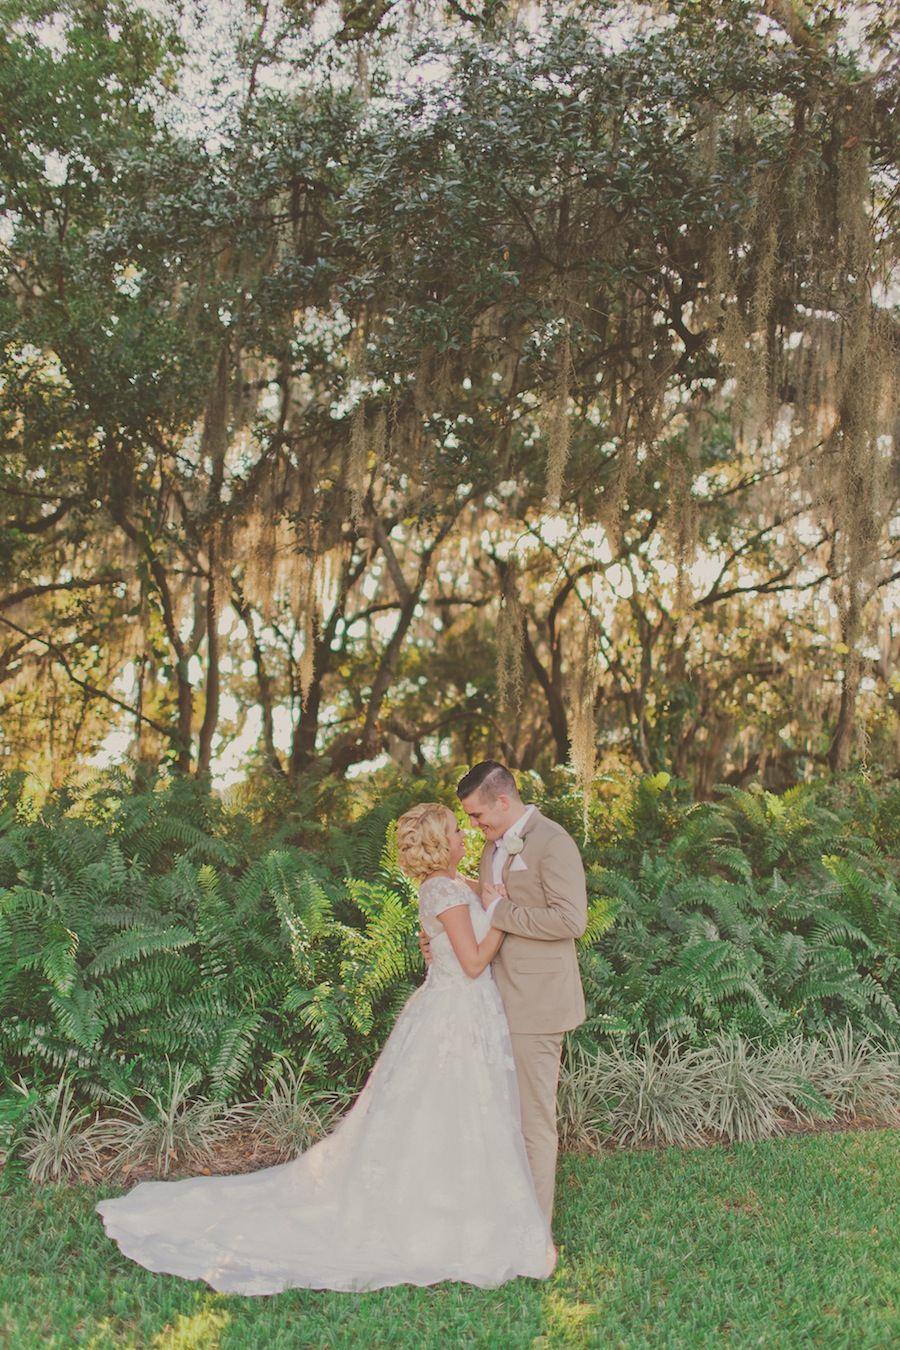 Rustic Bride and Groom Wedding Portrait   Stacy Paul Photography